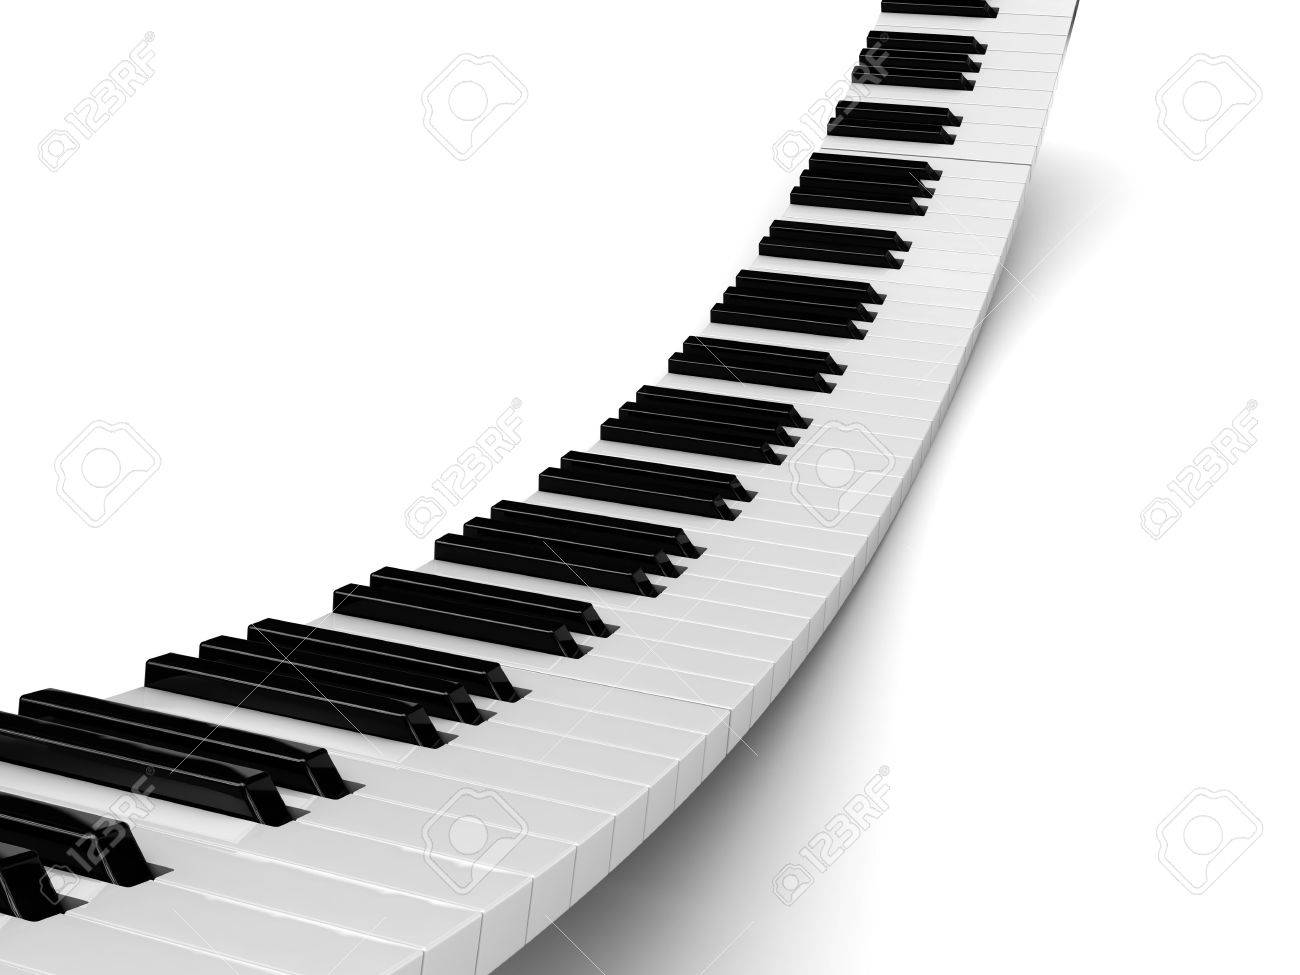 abstract 3d illustration of piano background Stock Photo - 6675714